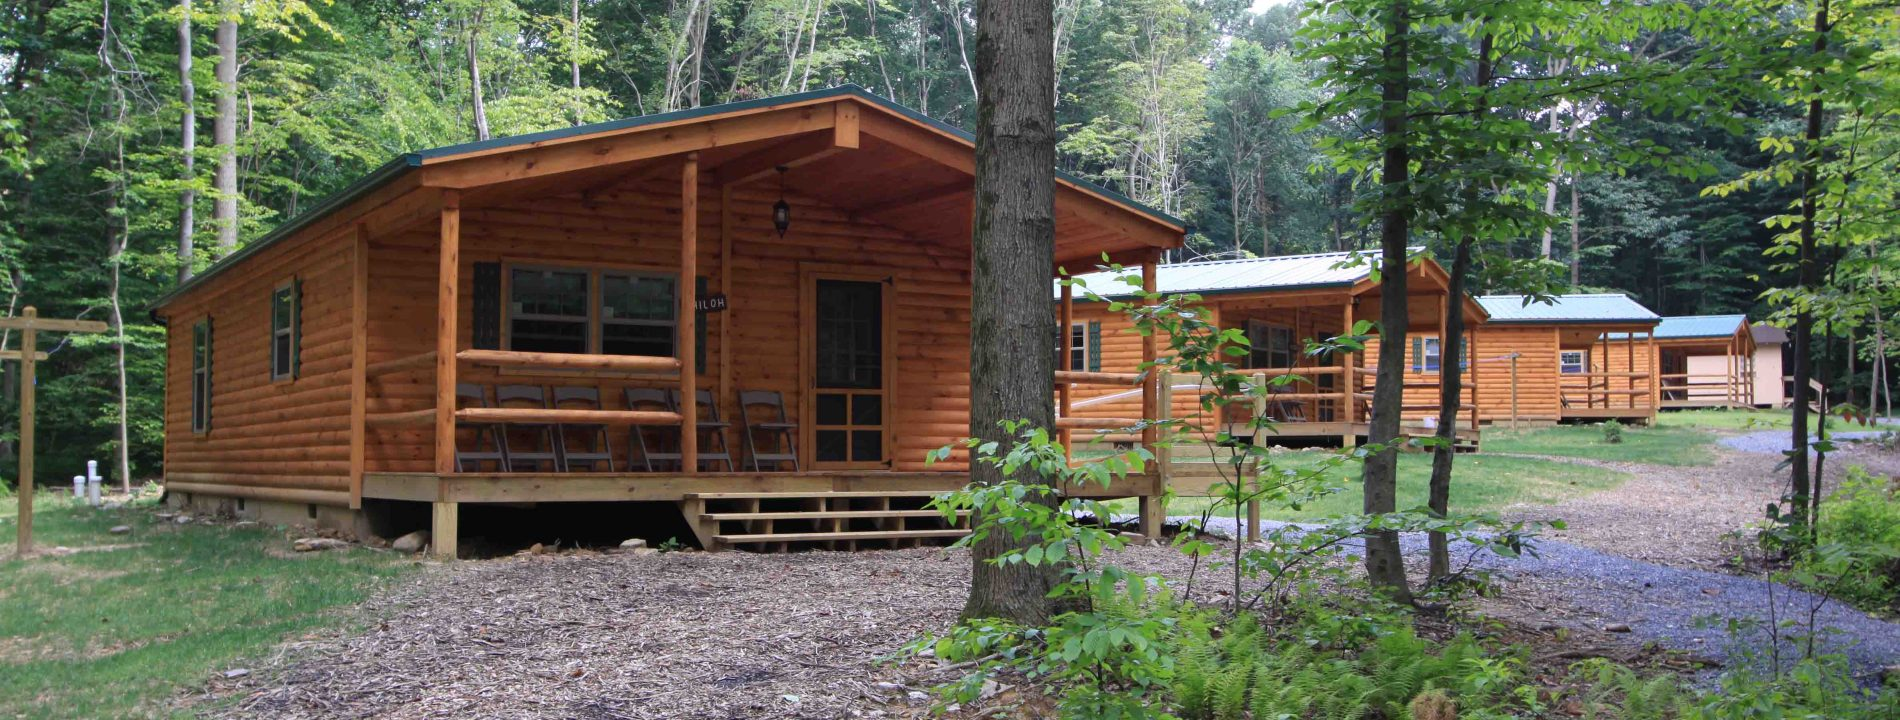 amish modular log cabins prices